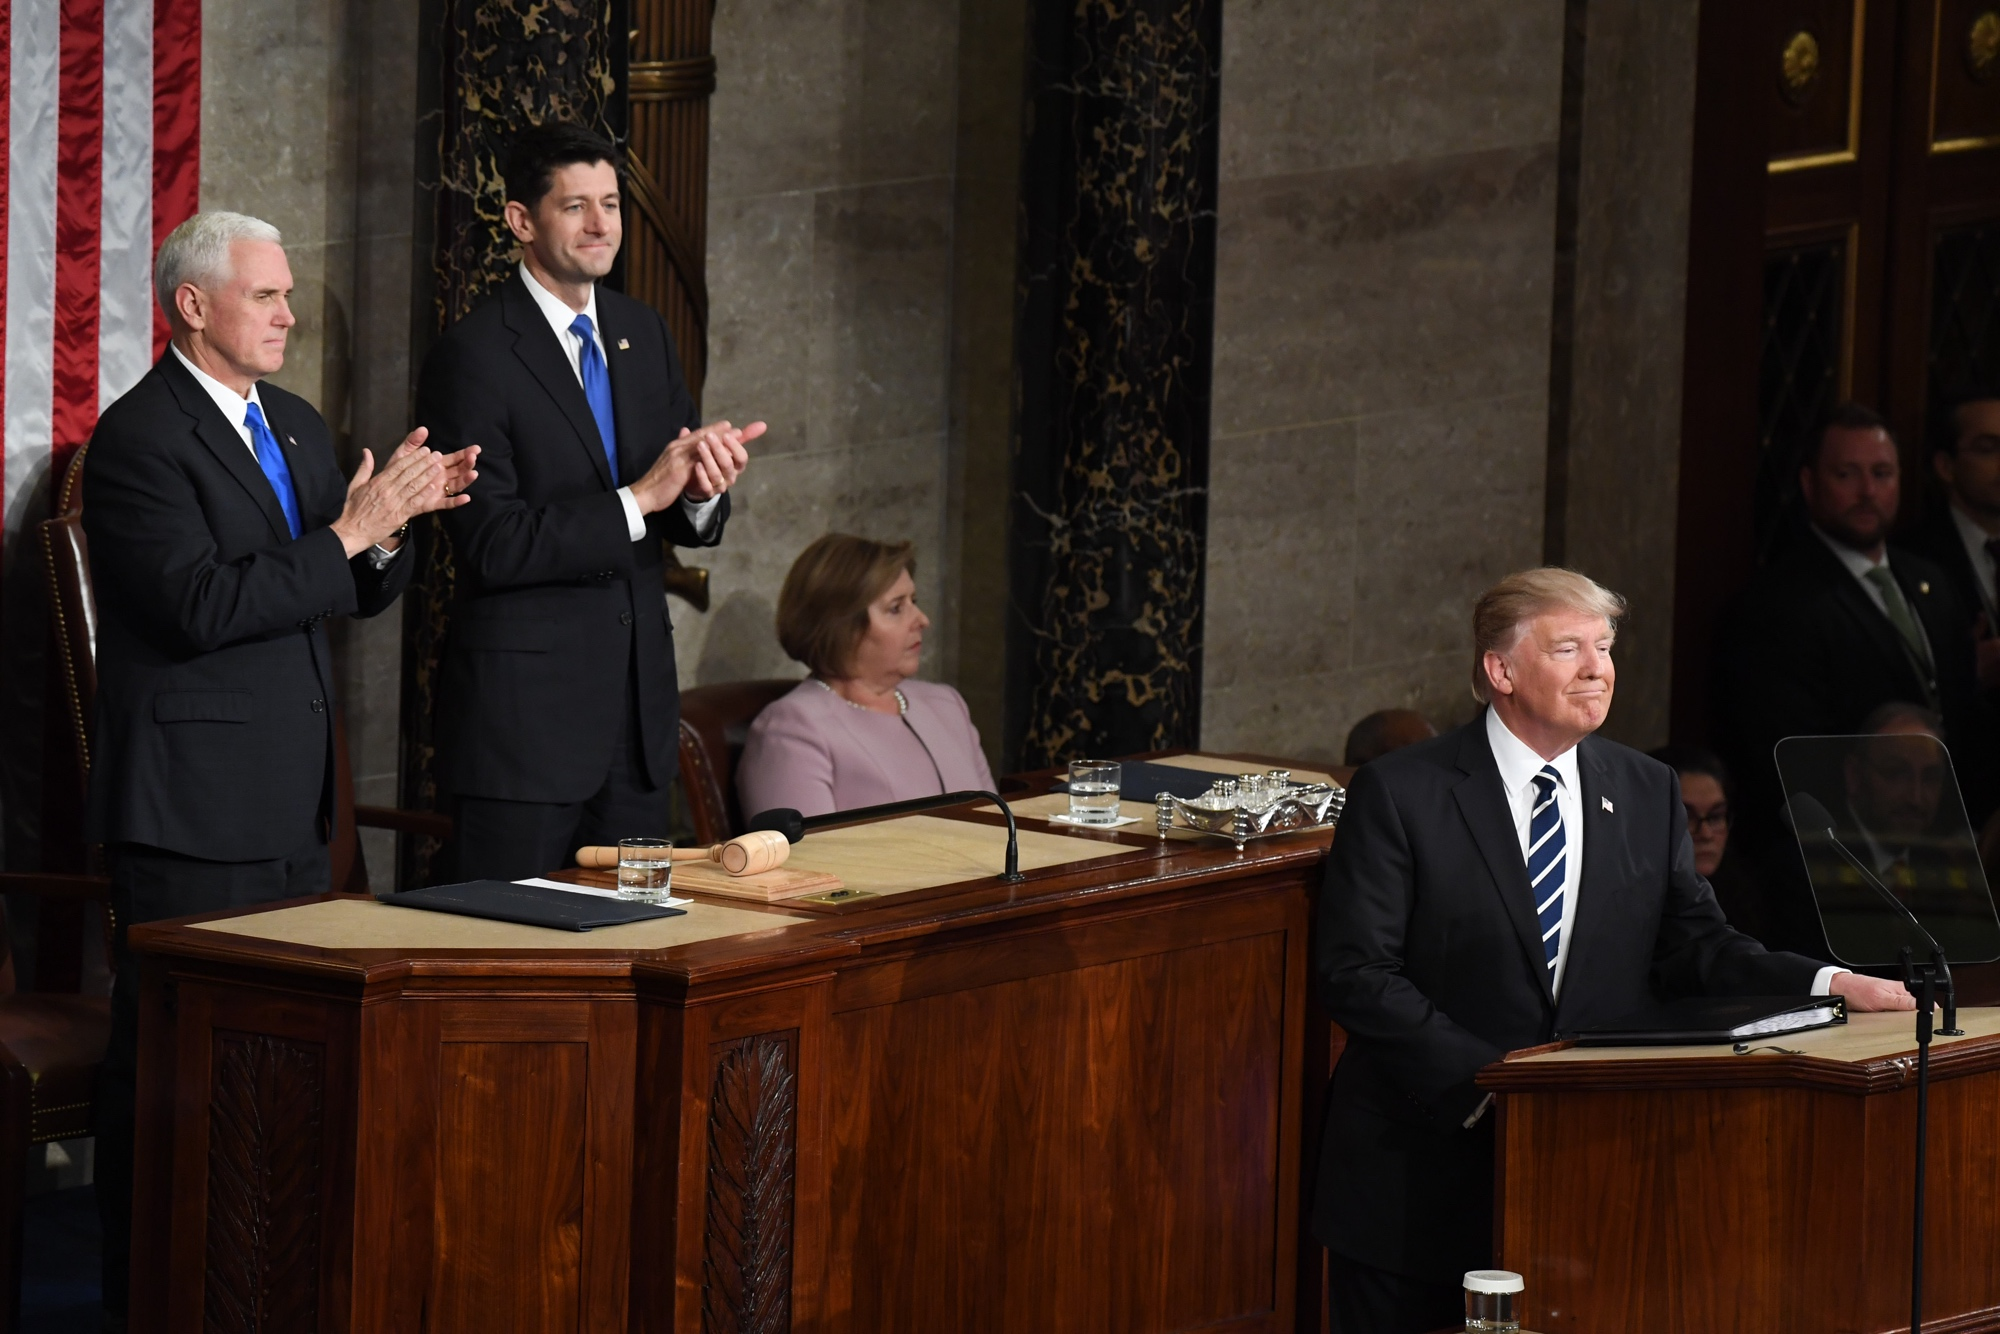 Trump begins his first address to a joint session of Congress on Tuesday. (Bill Clark/CQ Roll Call)